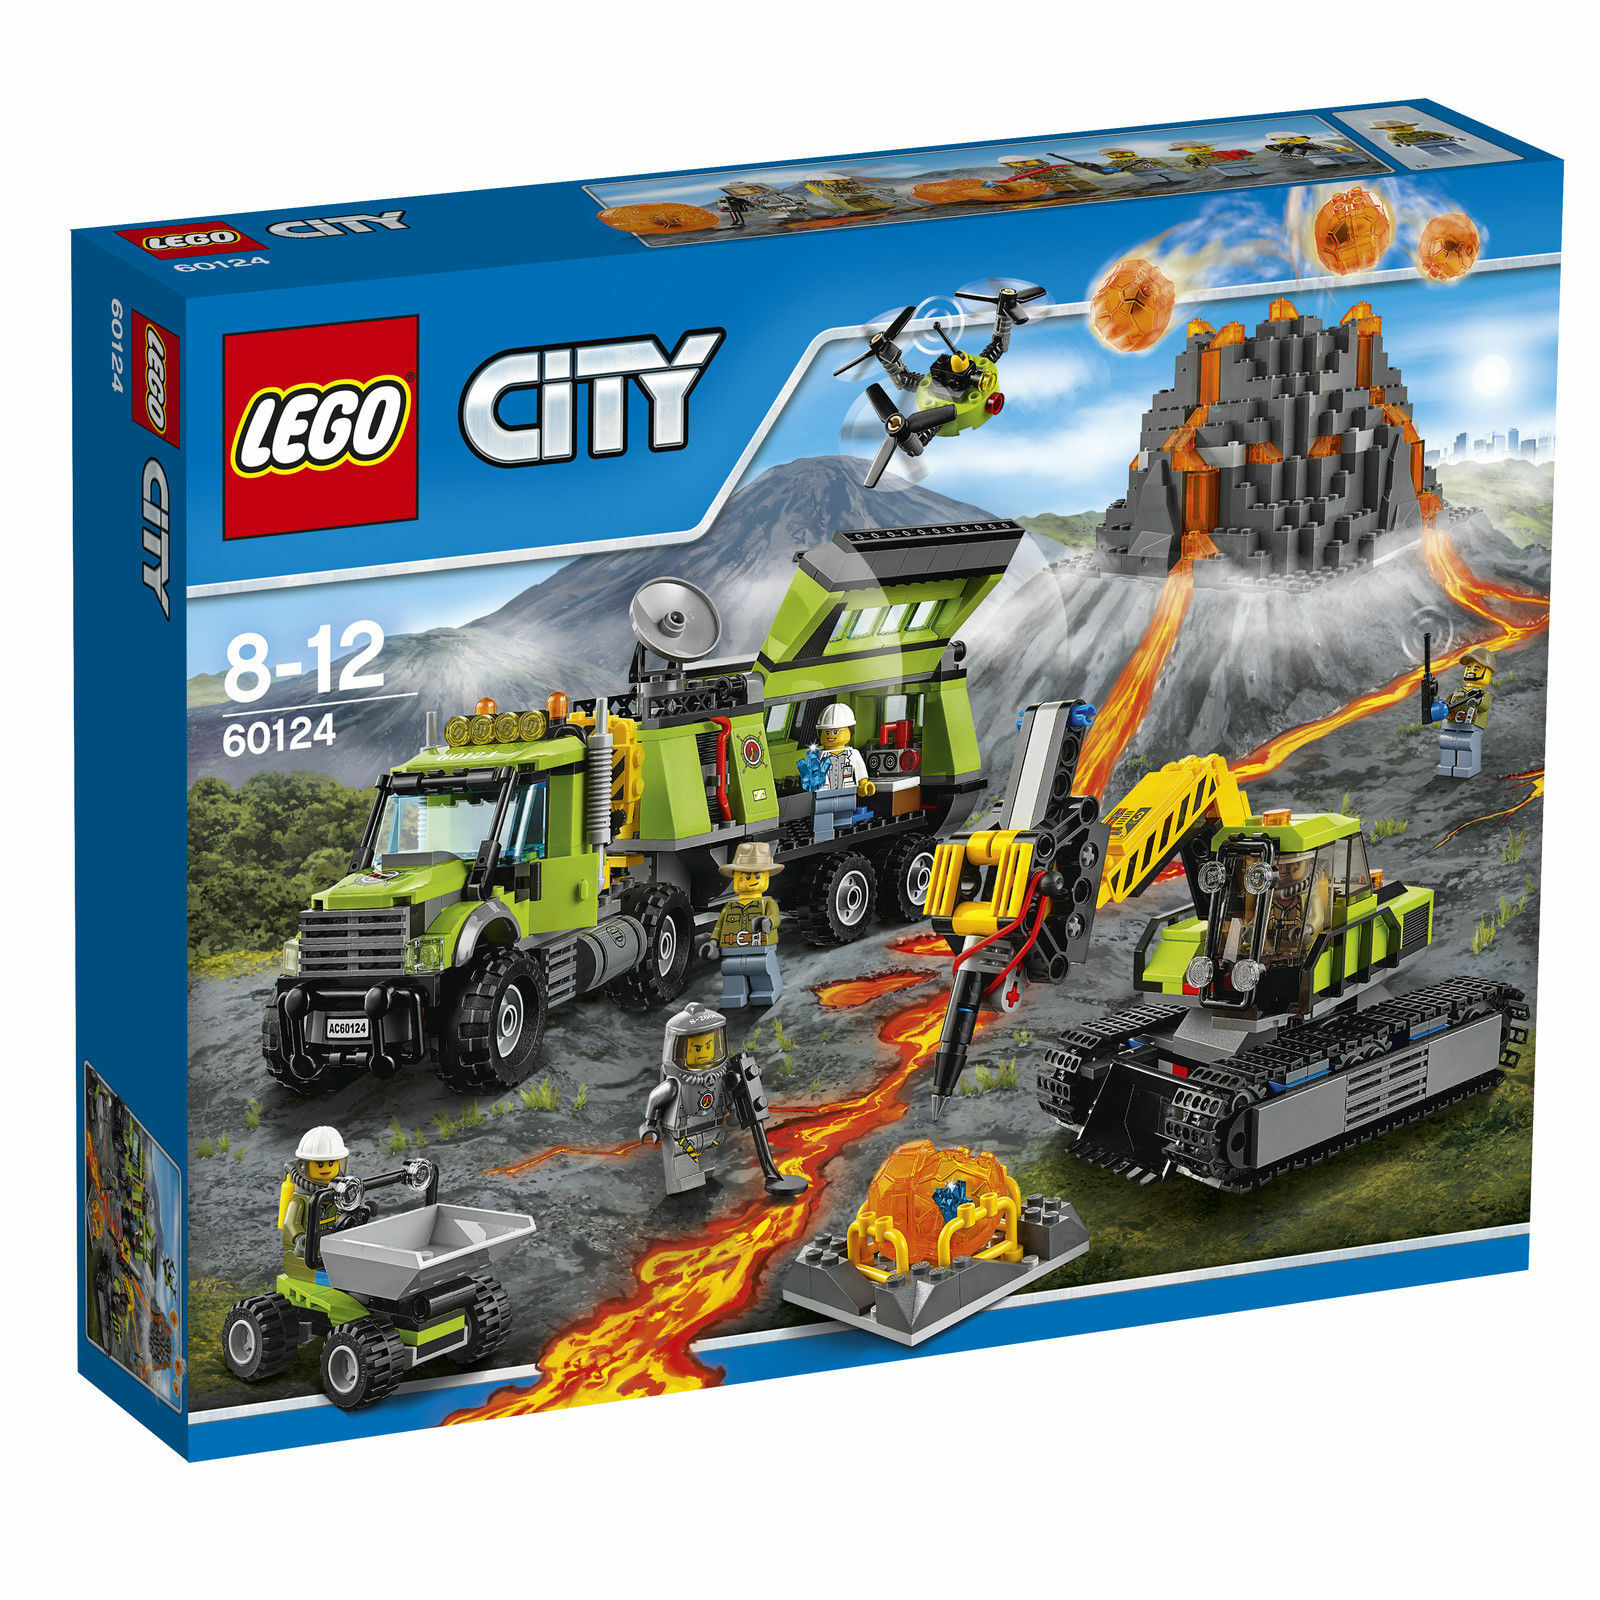 LEGO City 60124 Vulkan-Forscherstation, NEU, OVP